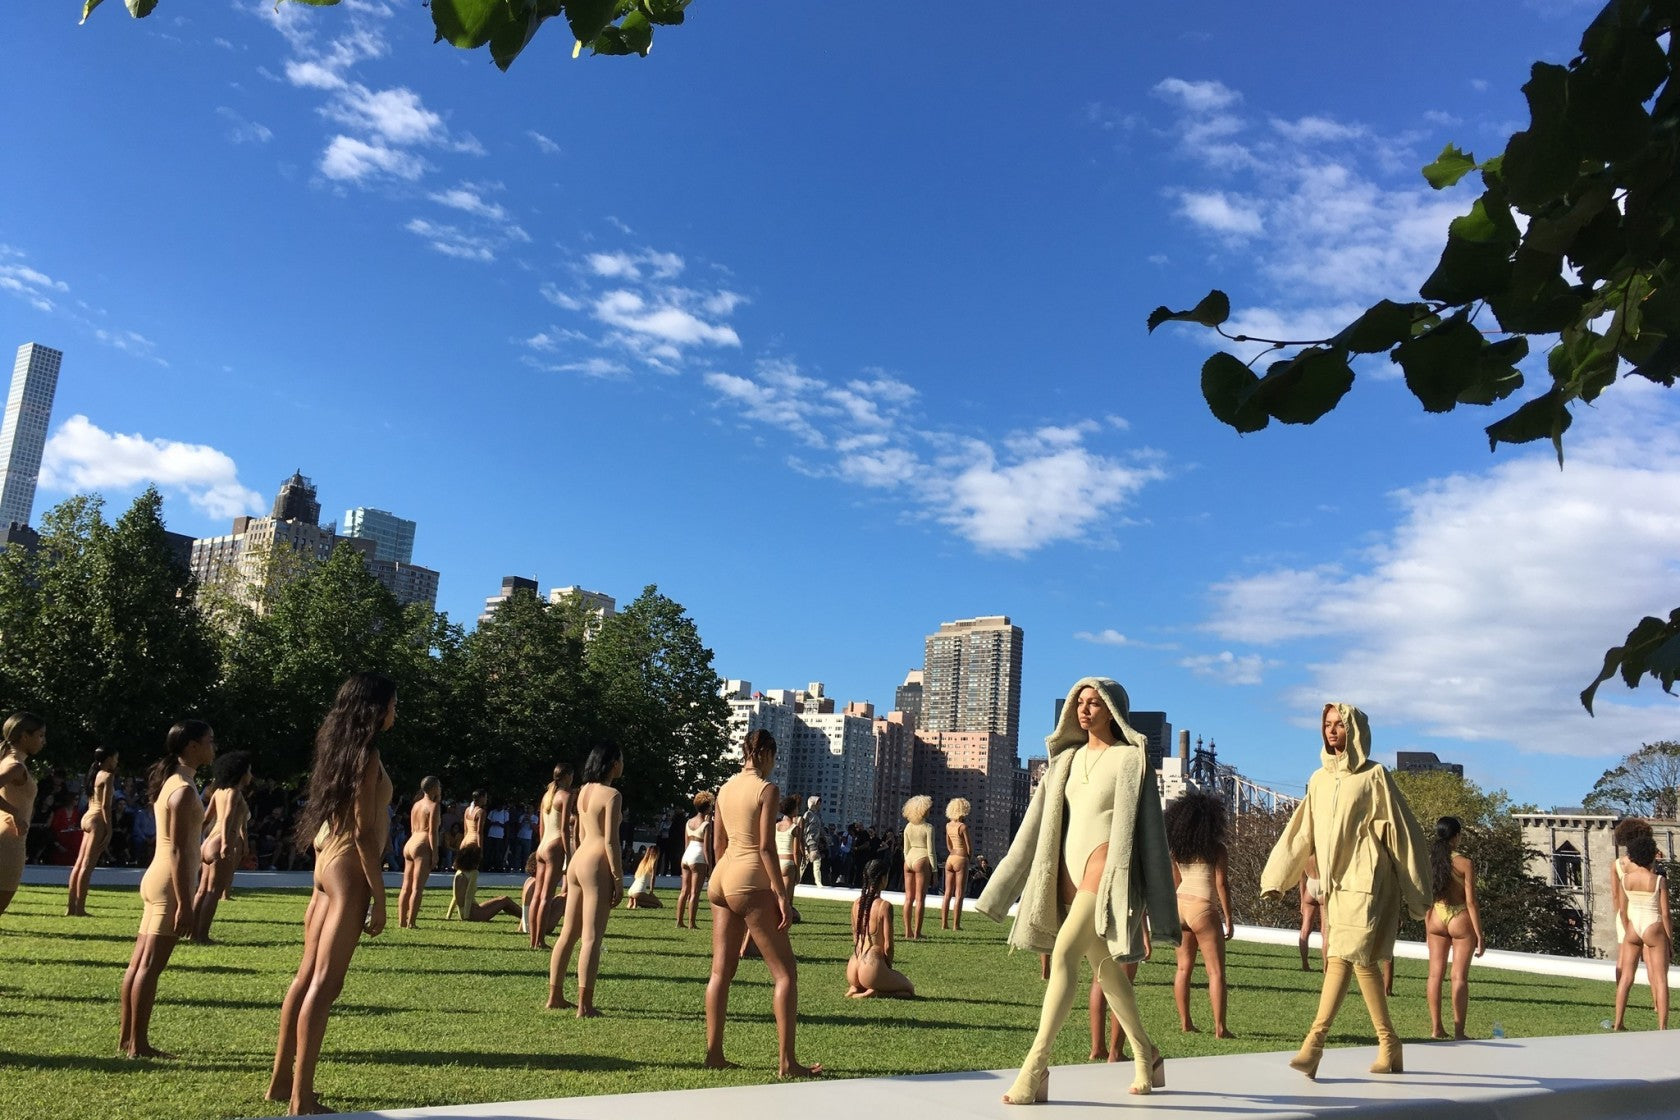 Yeezy Spring 2017 Fashion Show on Roosevelt Island, New York City